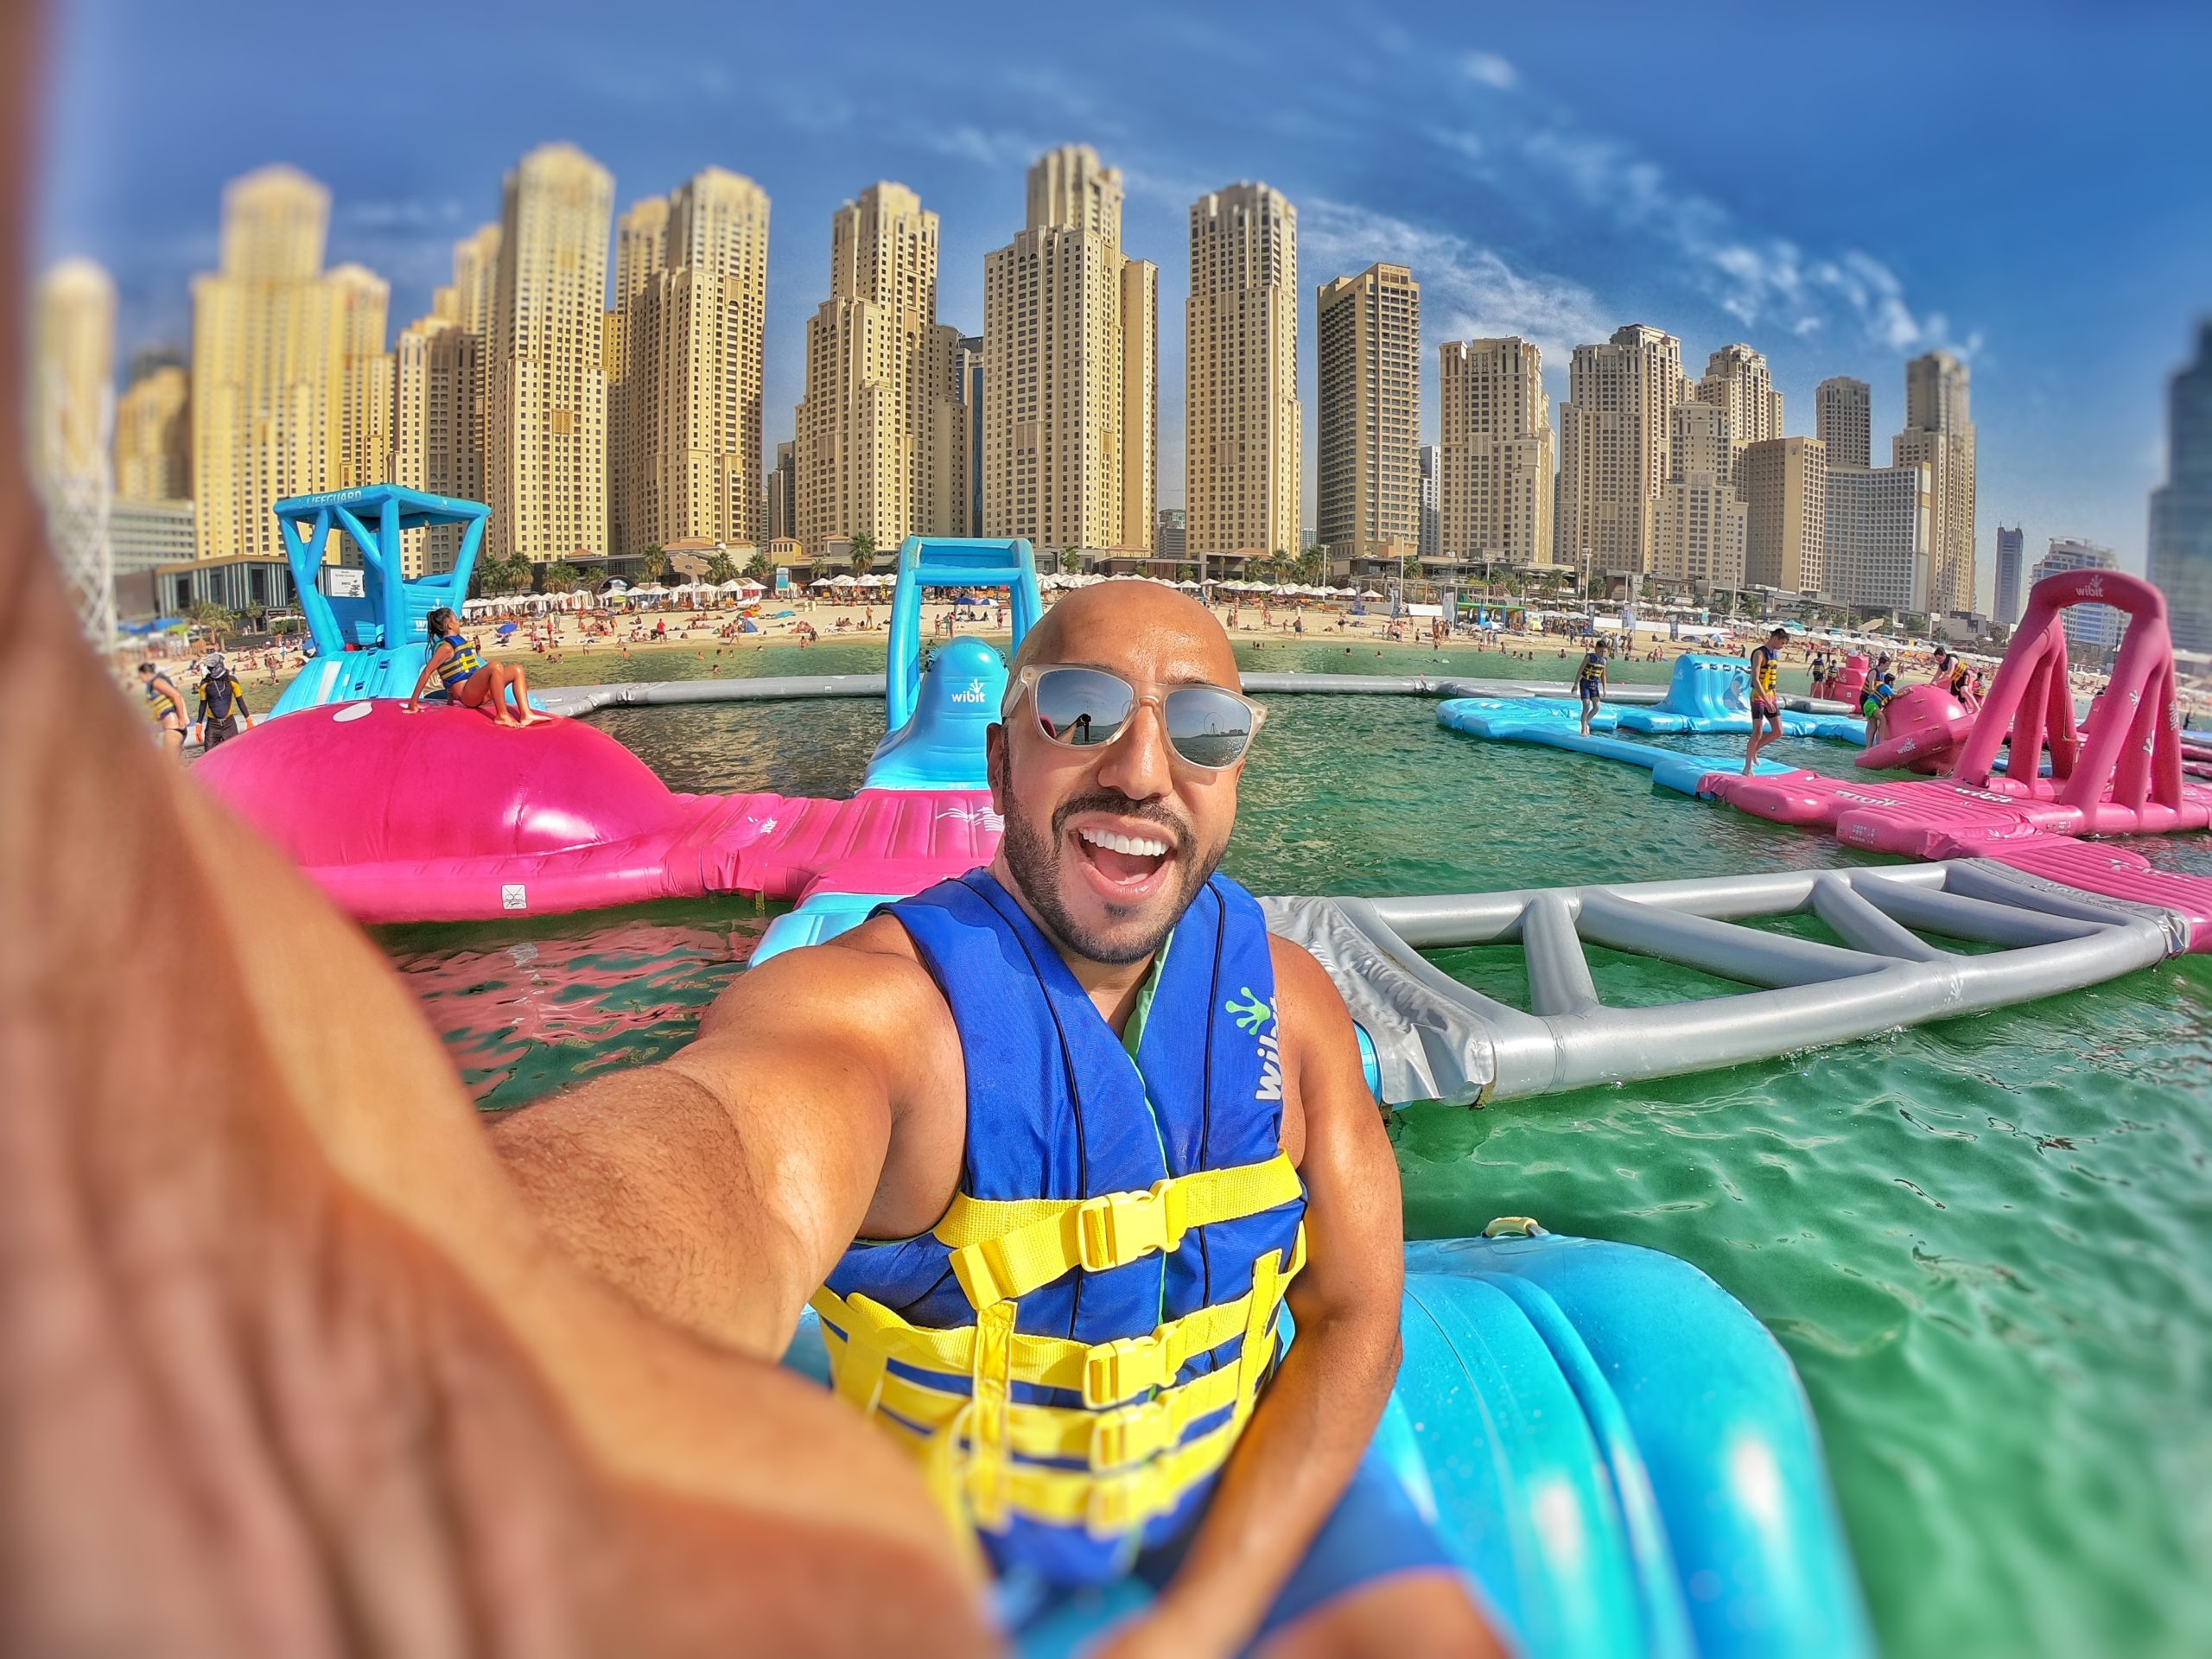 Ahmed Ben Chaibah, CEO of Aqua Fun